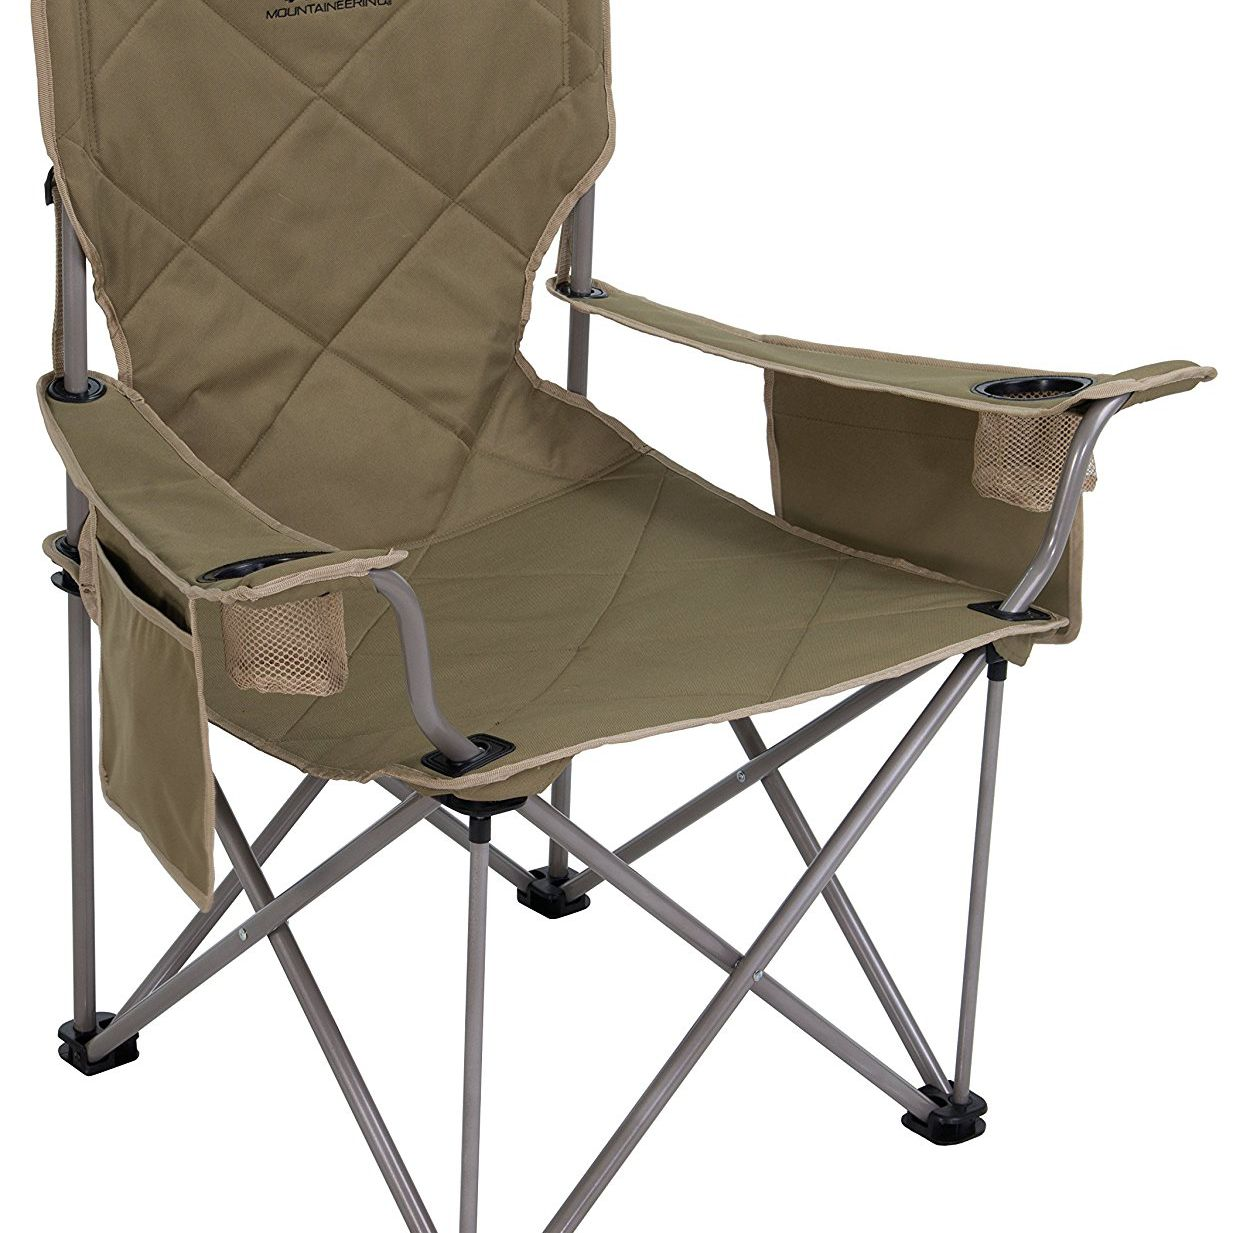 fishing chair for bad back floor gaming best camping chairs of 2019 alps mountaineering king kong